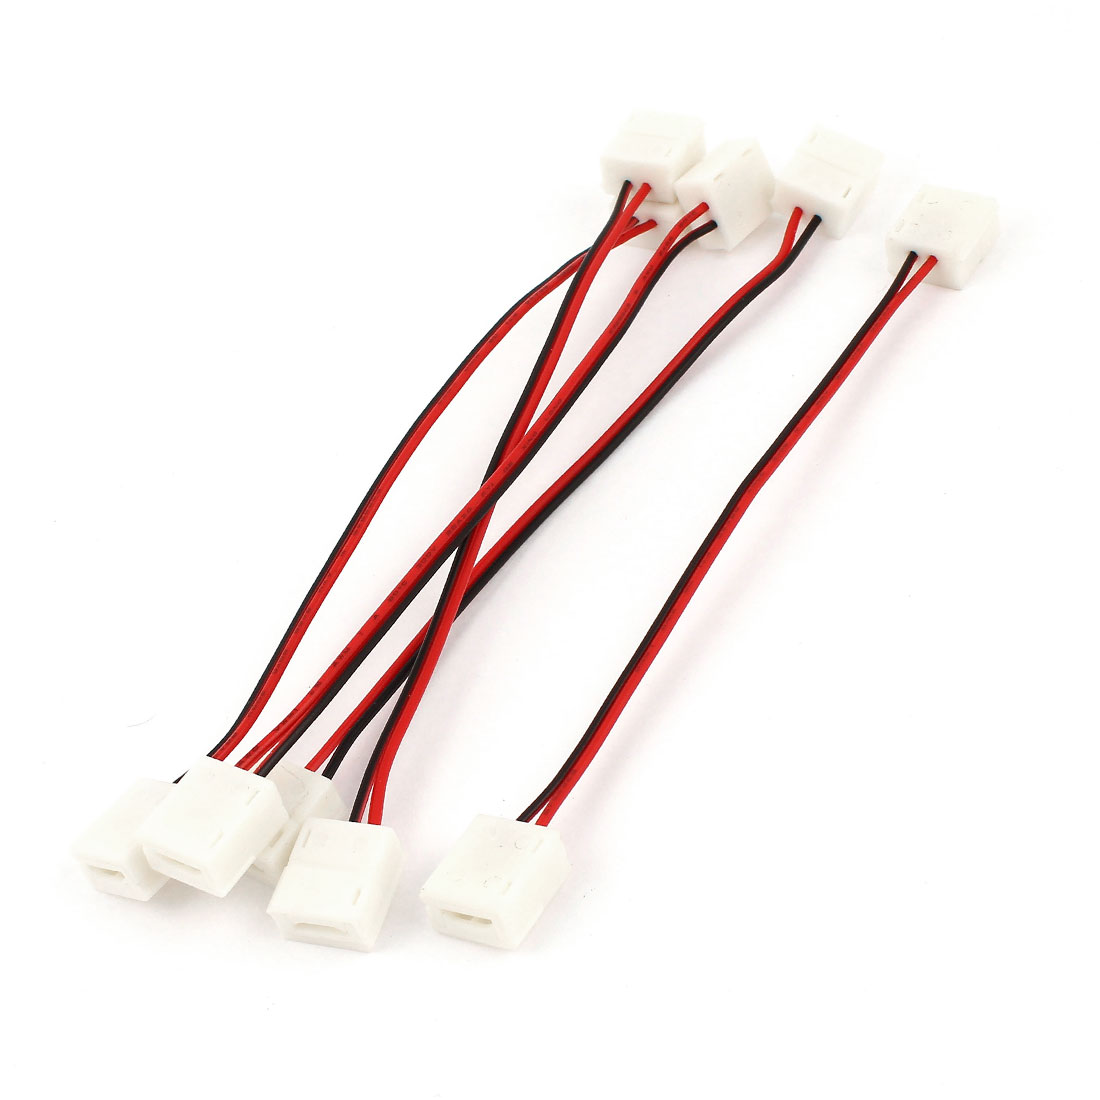 5pcs 15cm Long Double Terminal 2pole Adapter Wire Connector for 3528 RGB Light Strip